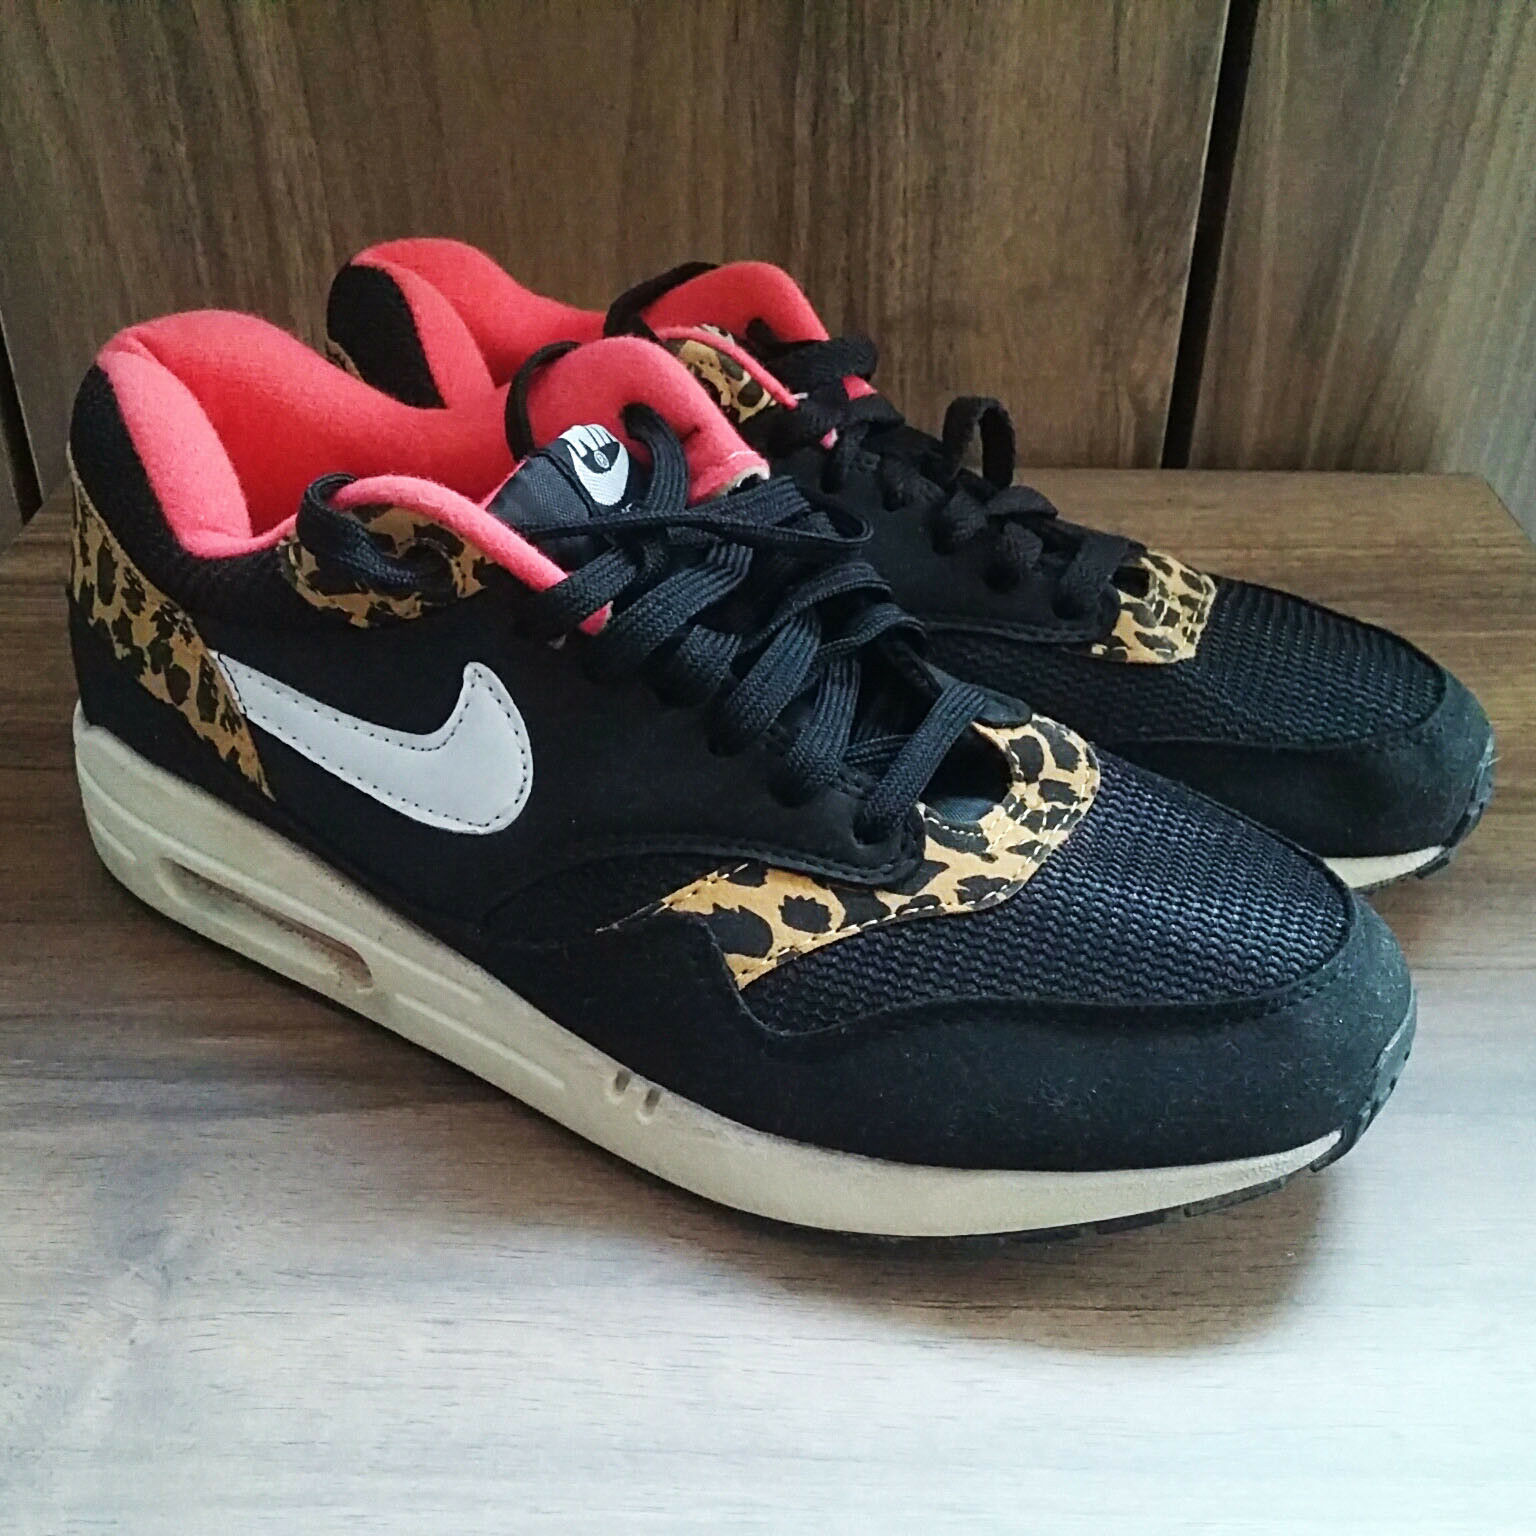 official photos 34ced e6a0b Used NIKE AIR MAX Leopard 319986 US 9 WMNS 026 oyrtah4586-Athletic Shoes